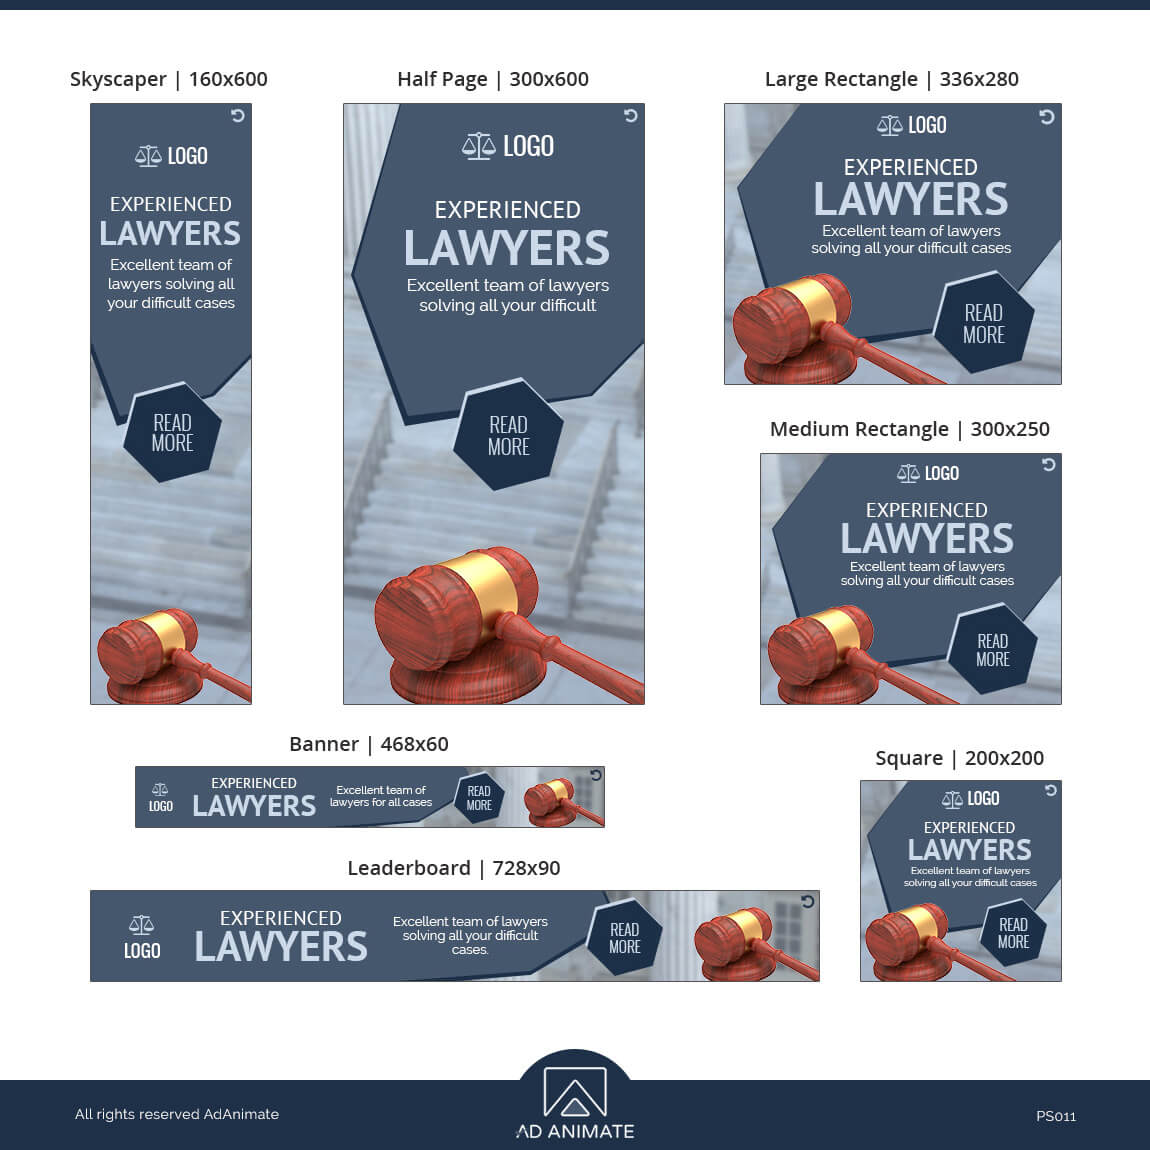 Lawyer banner ad